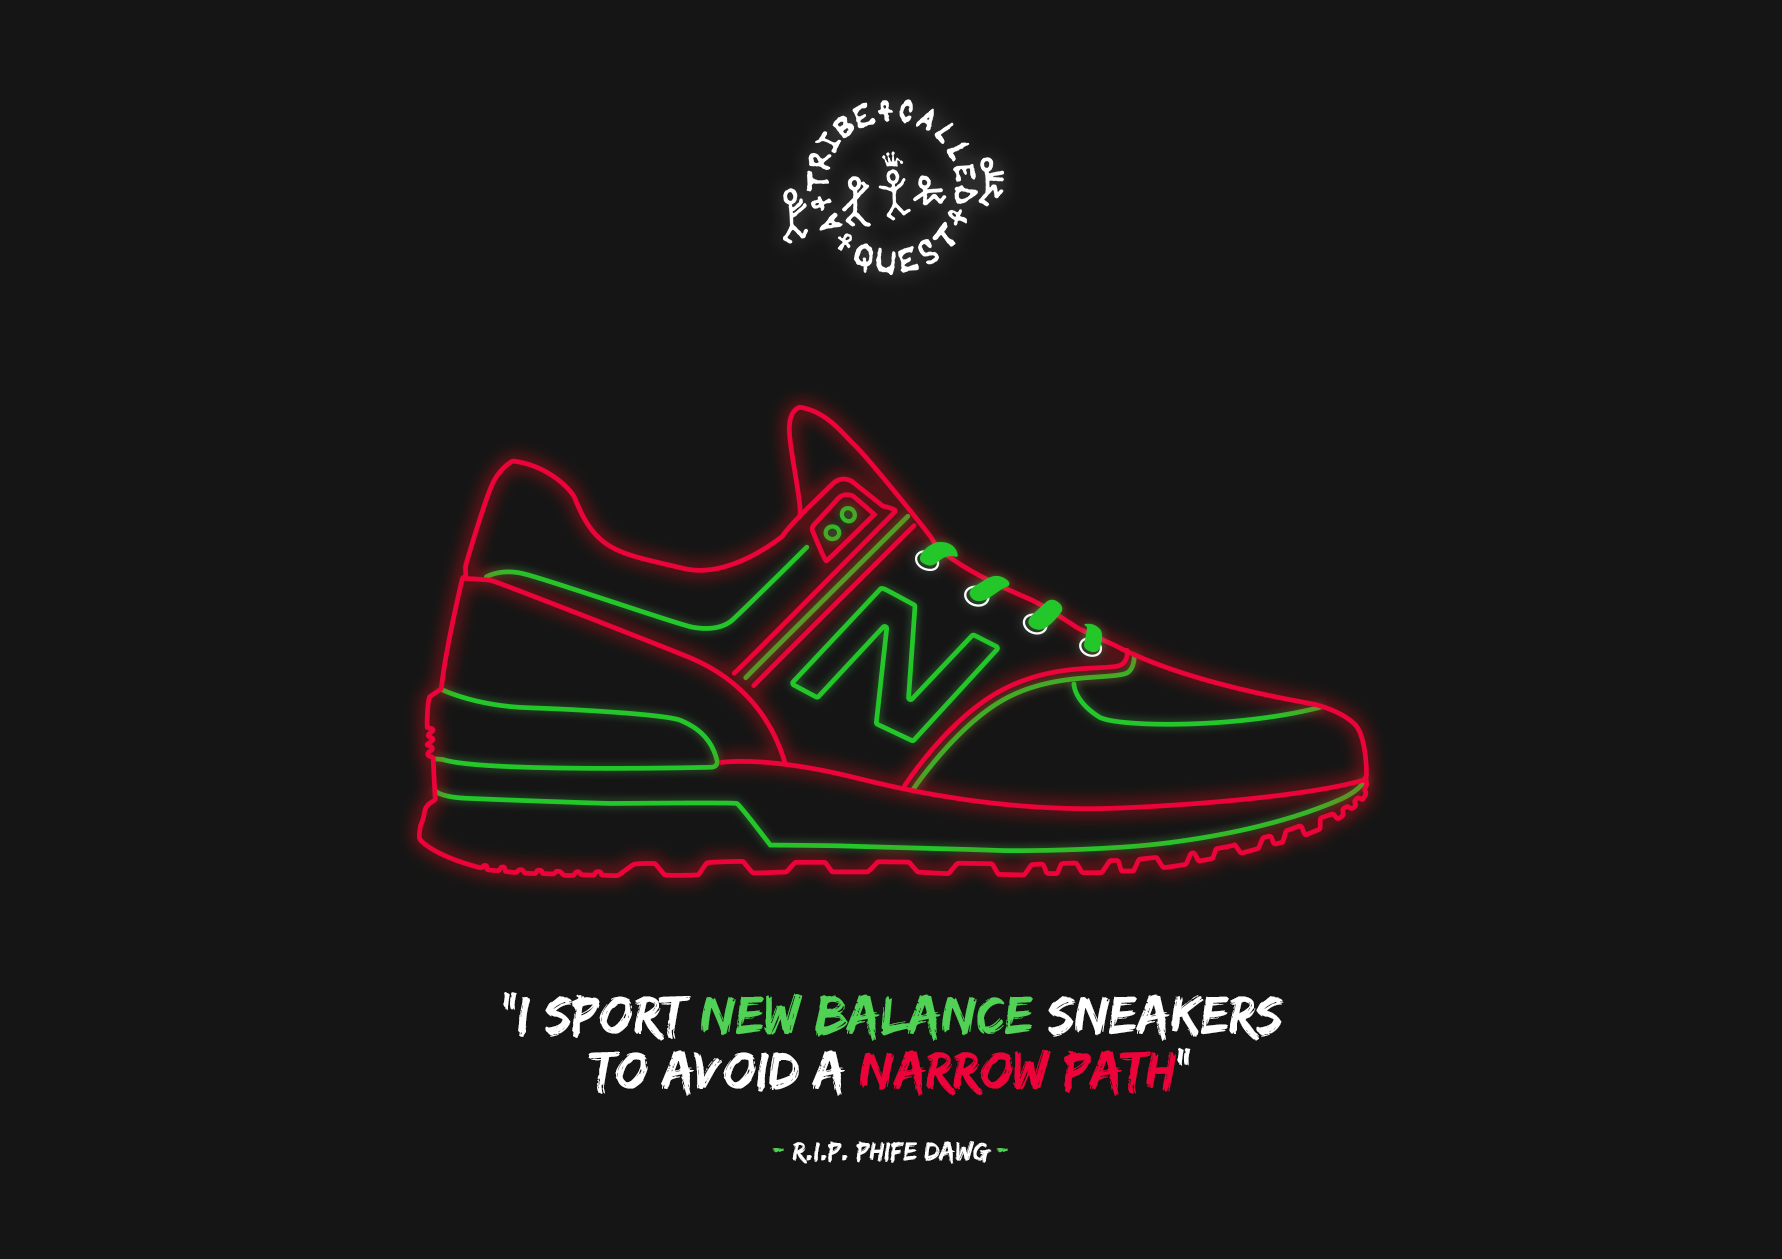 A Tribe Called Quest x New Balance